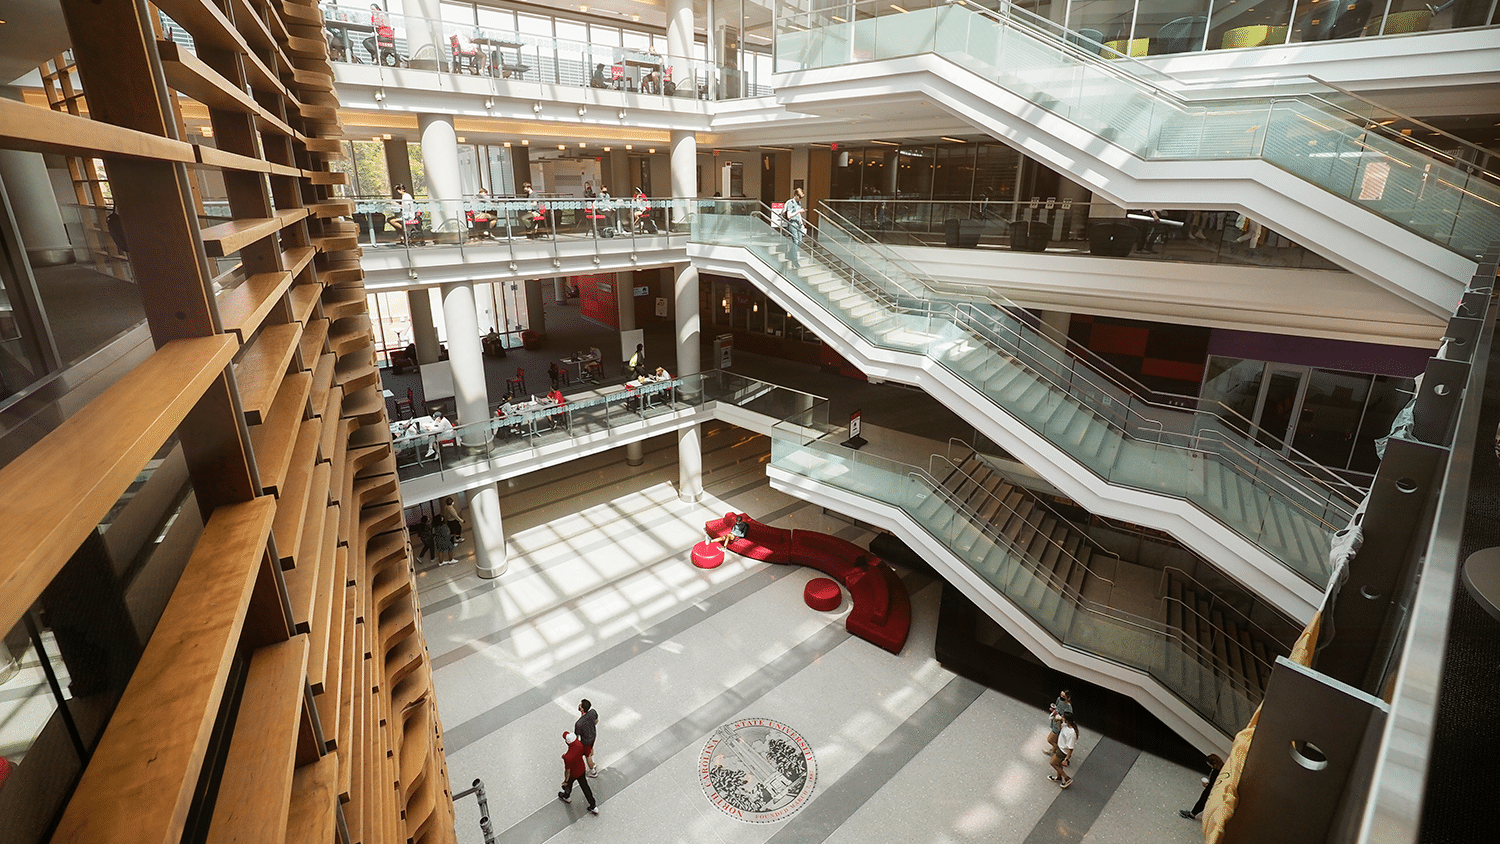 A view of the Talley Student Union atrium from the top floor.